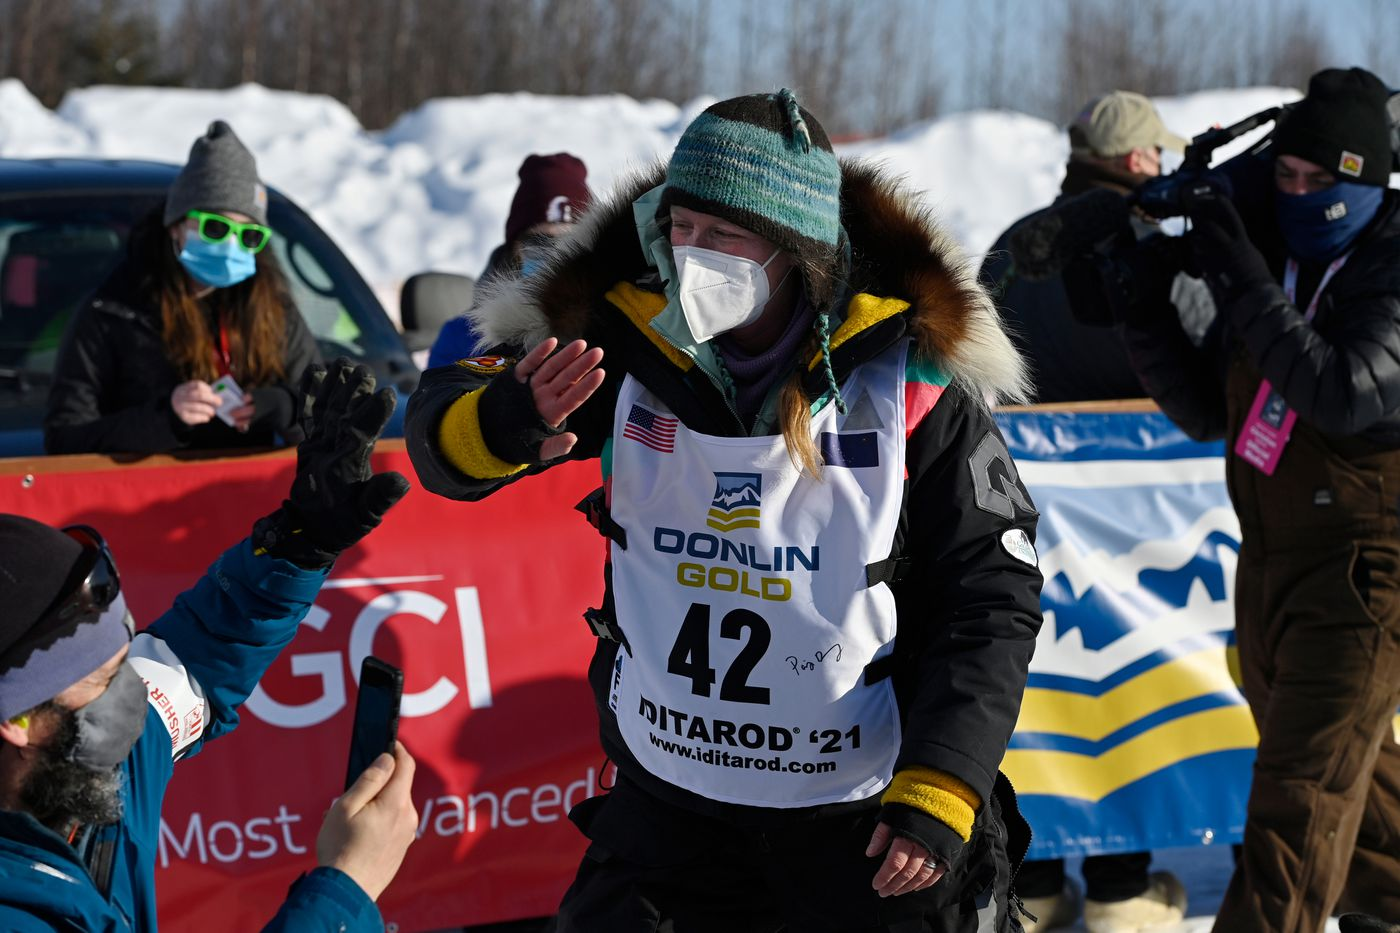 Paige Drobny high-fives people before beginning her Iditarod. Forty-six mushers began the 2021 Iditarod Trail Sled Dog race from Deshka Landing in Willow on March 7, 2021. (Marc Lester / ADN)